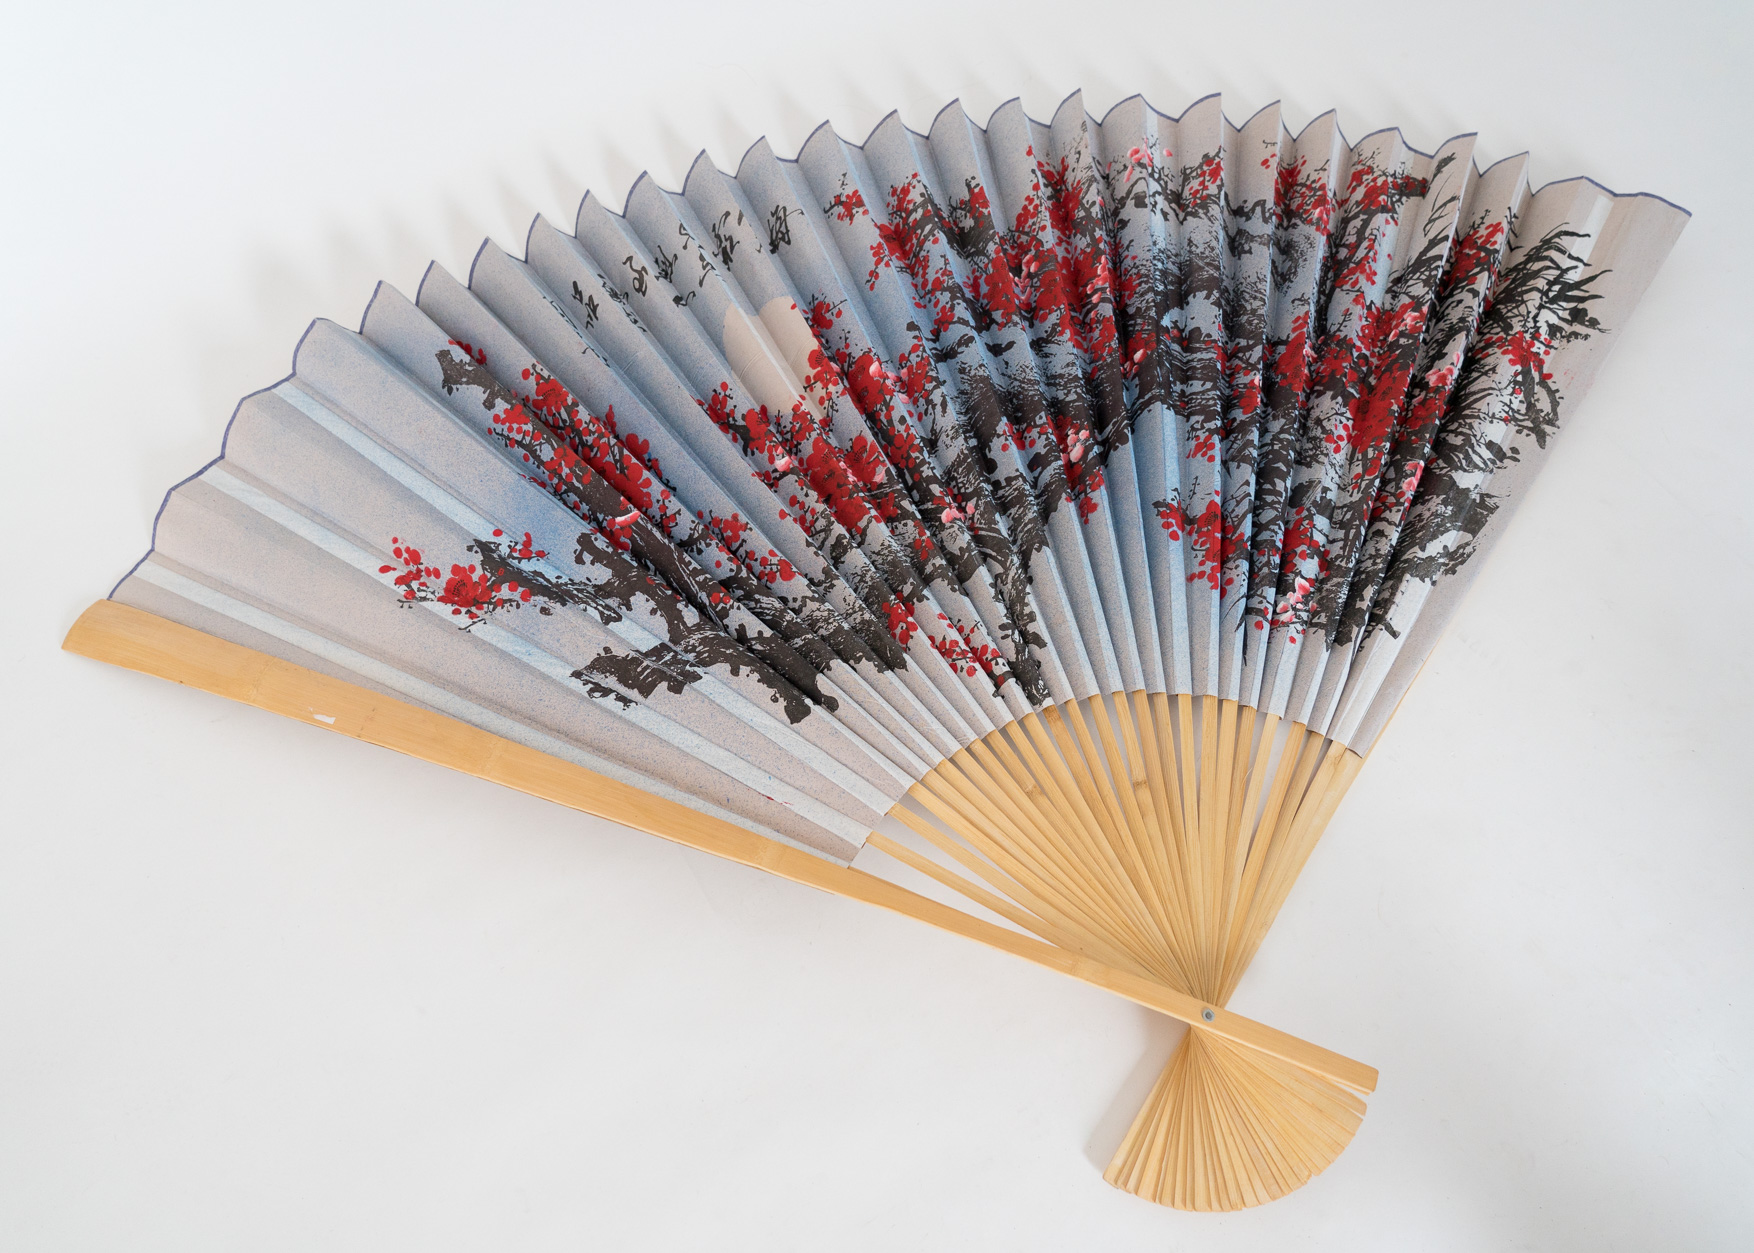 Large Japanese hand fan